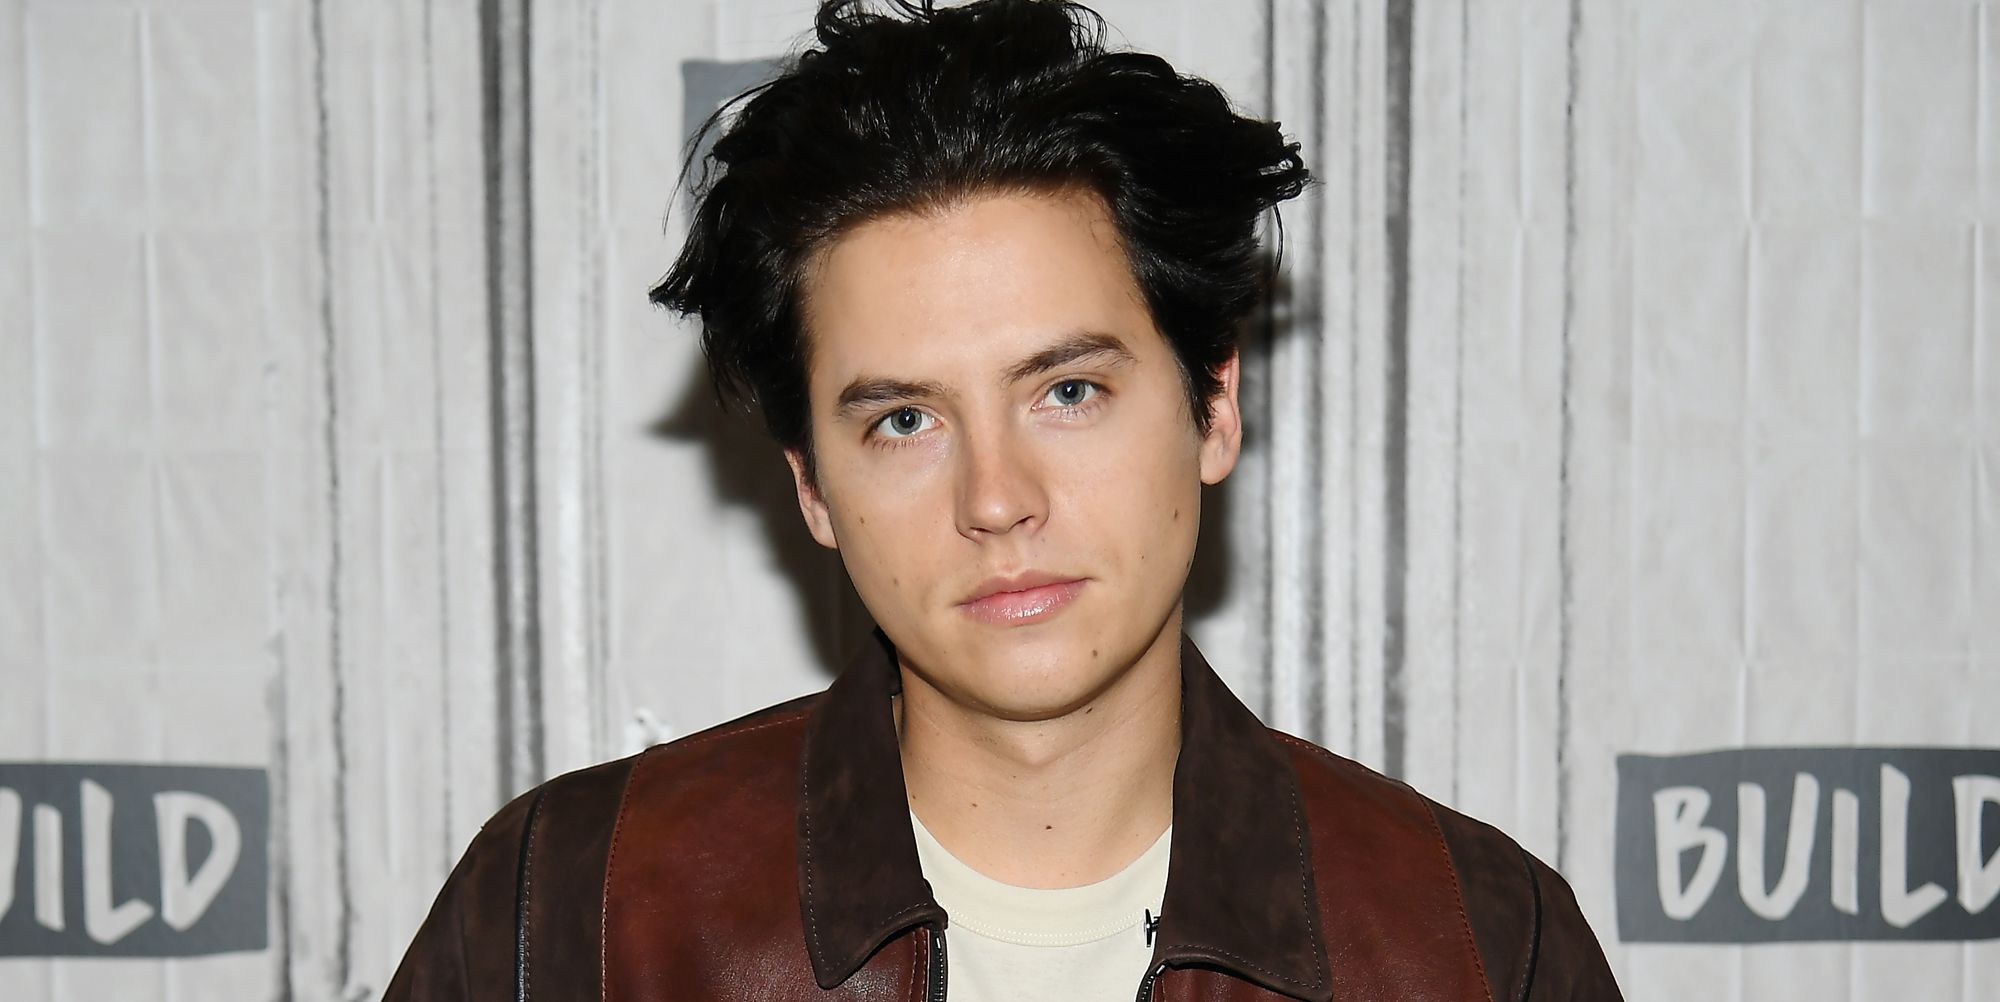 Cole Sprouse Just Got a Whole New Hairdo and Doesn't Even Look Like Jughead Anymore